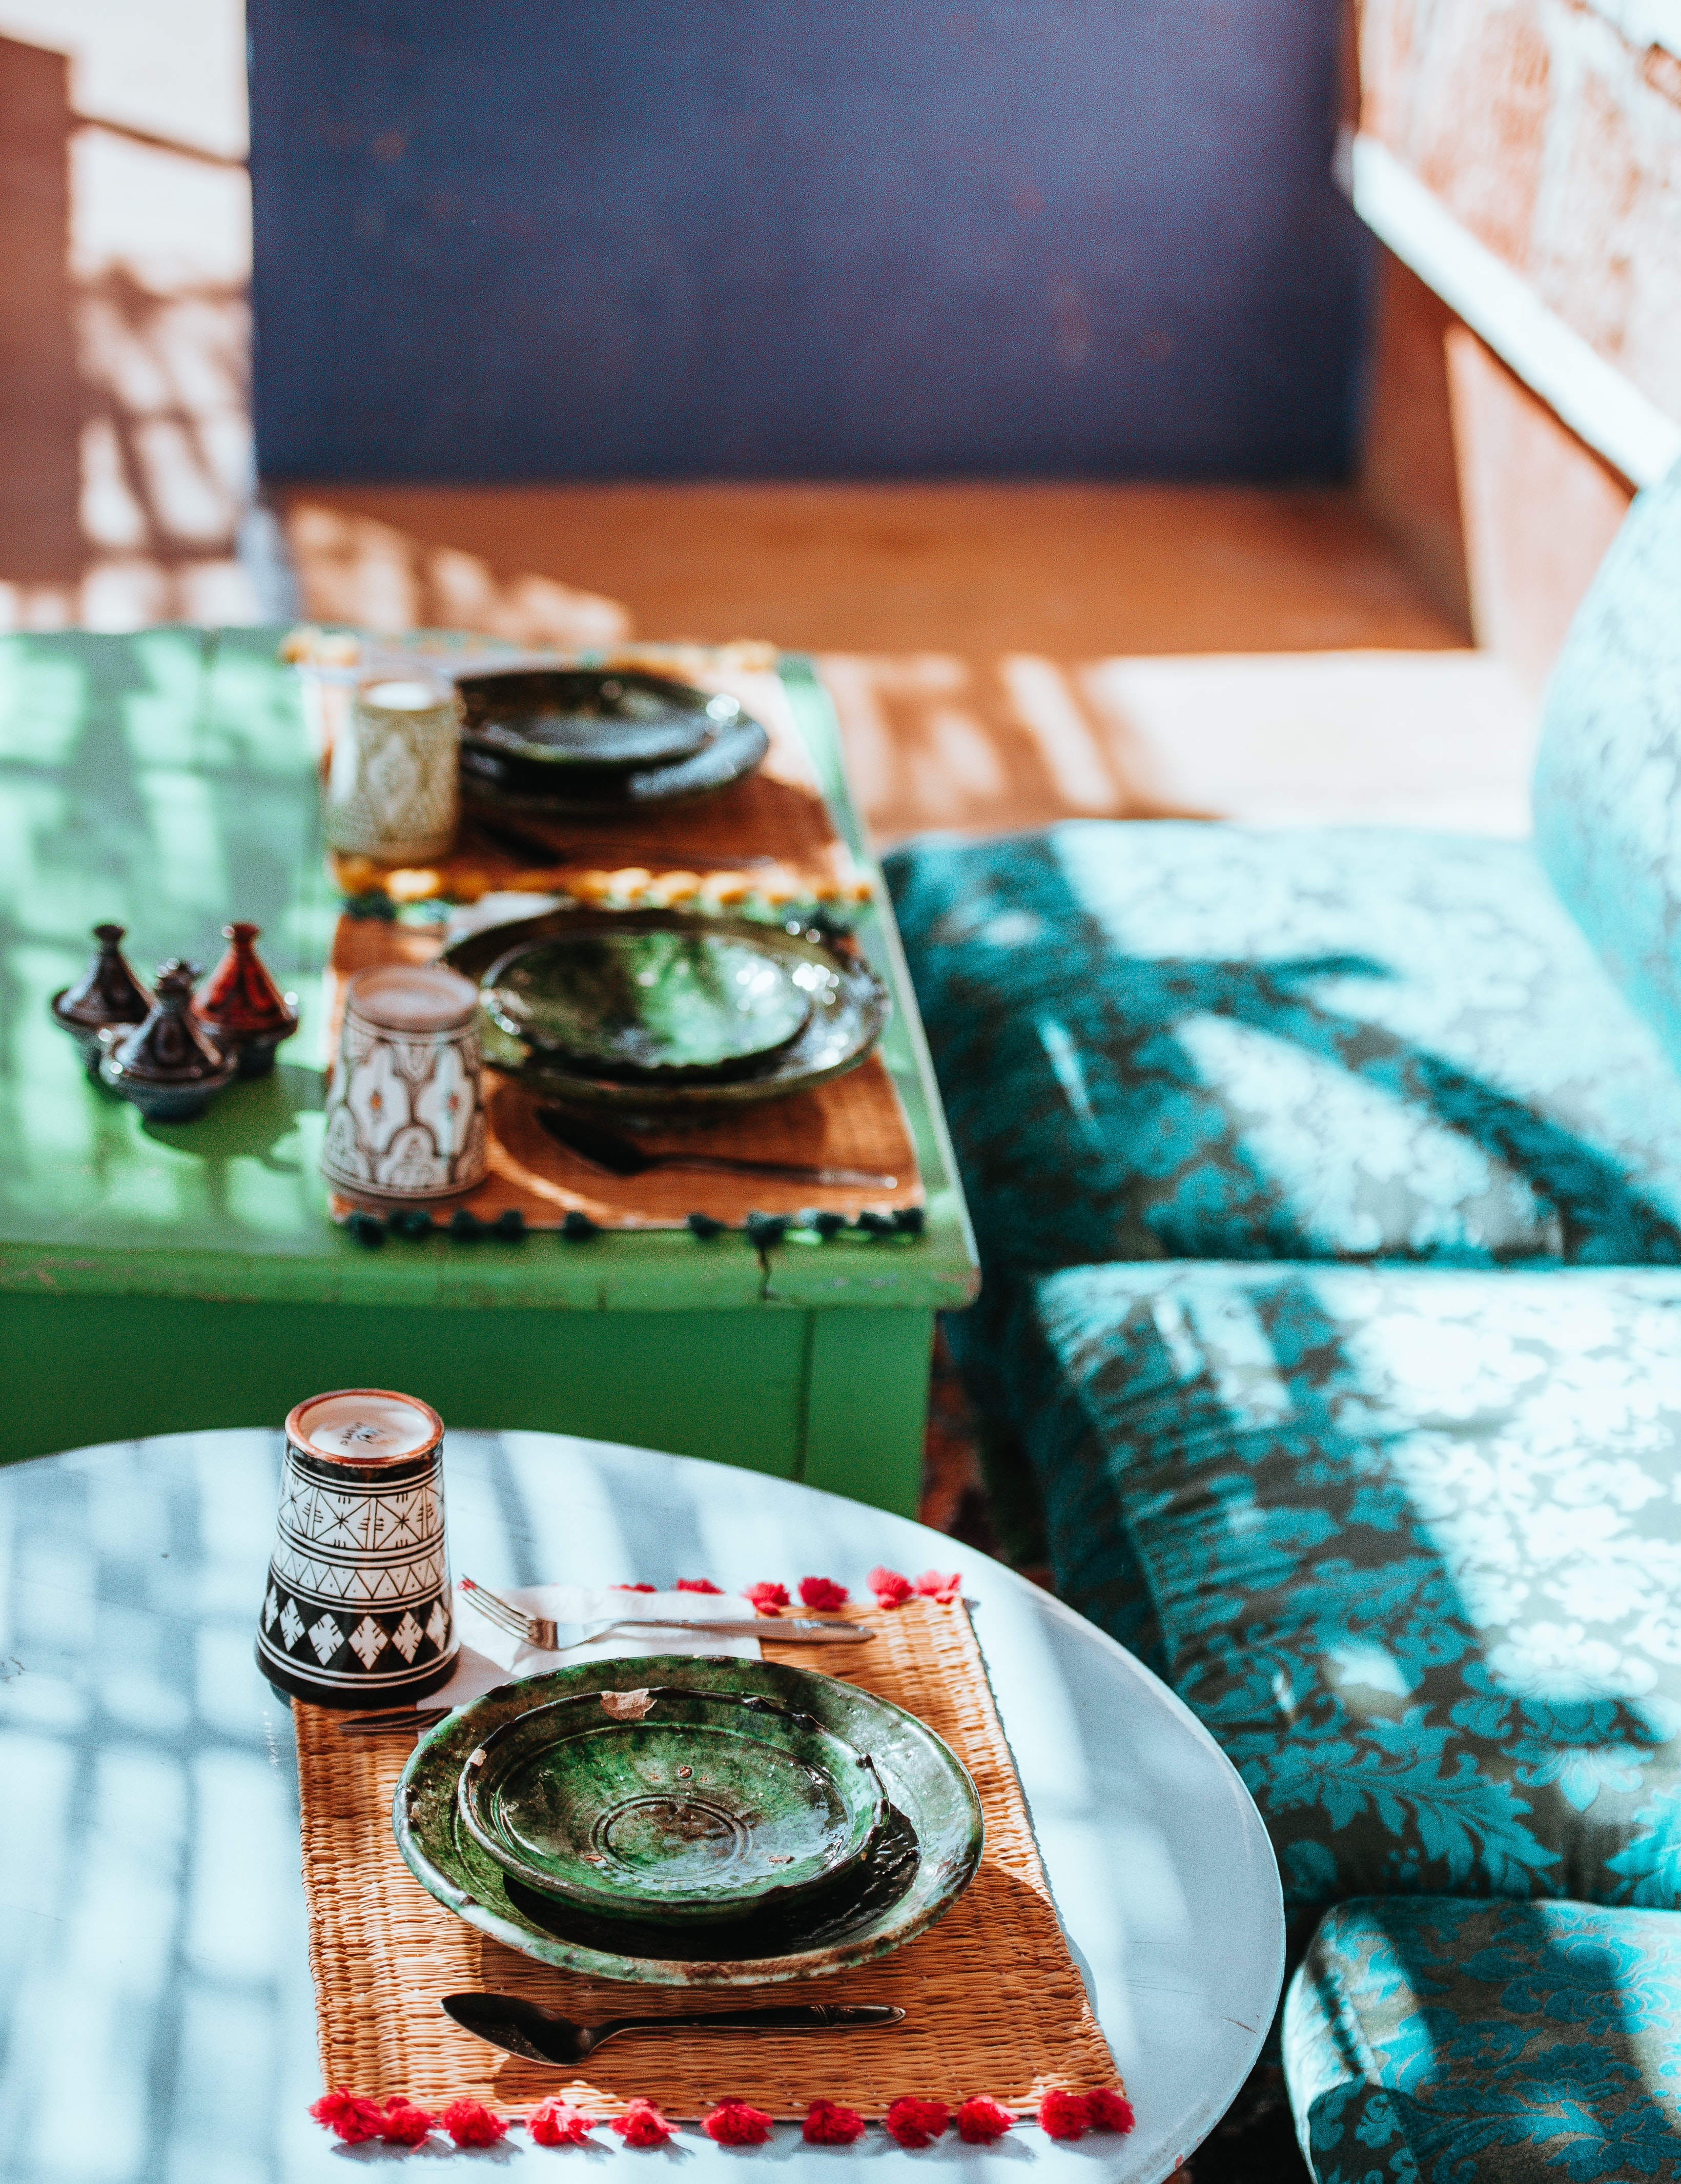 green ceramic saucers on green and teal tables